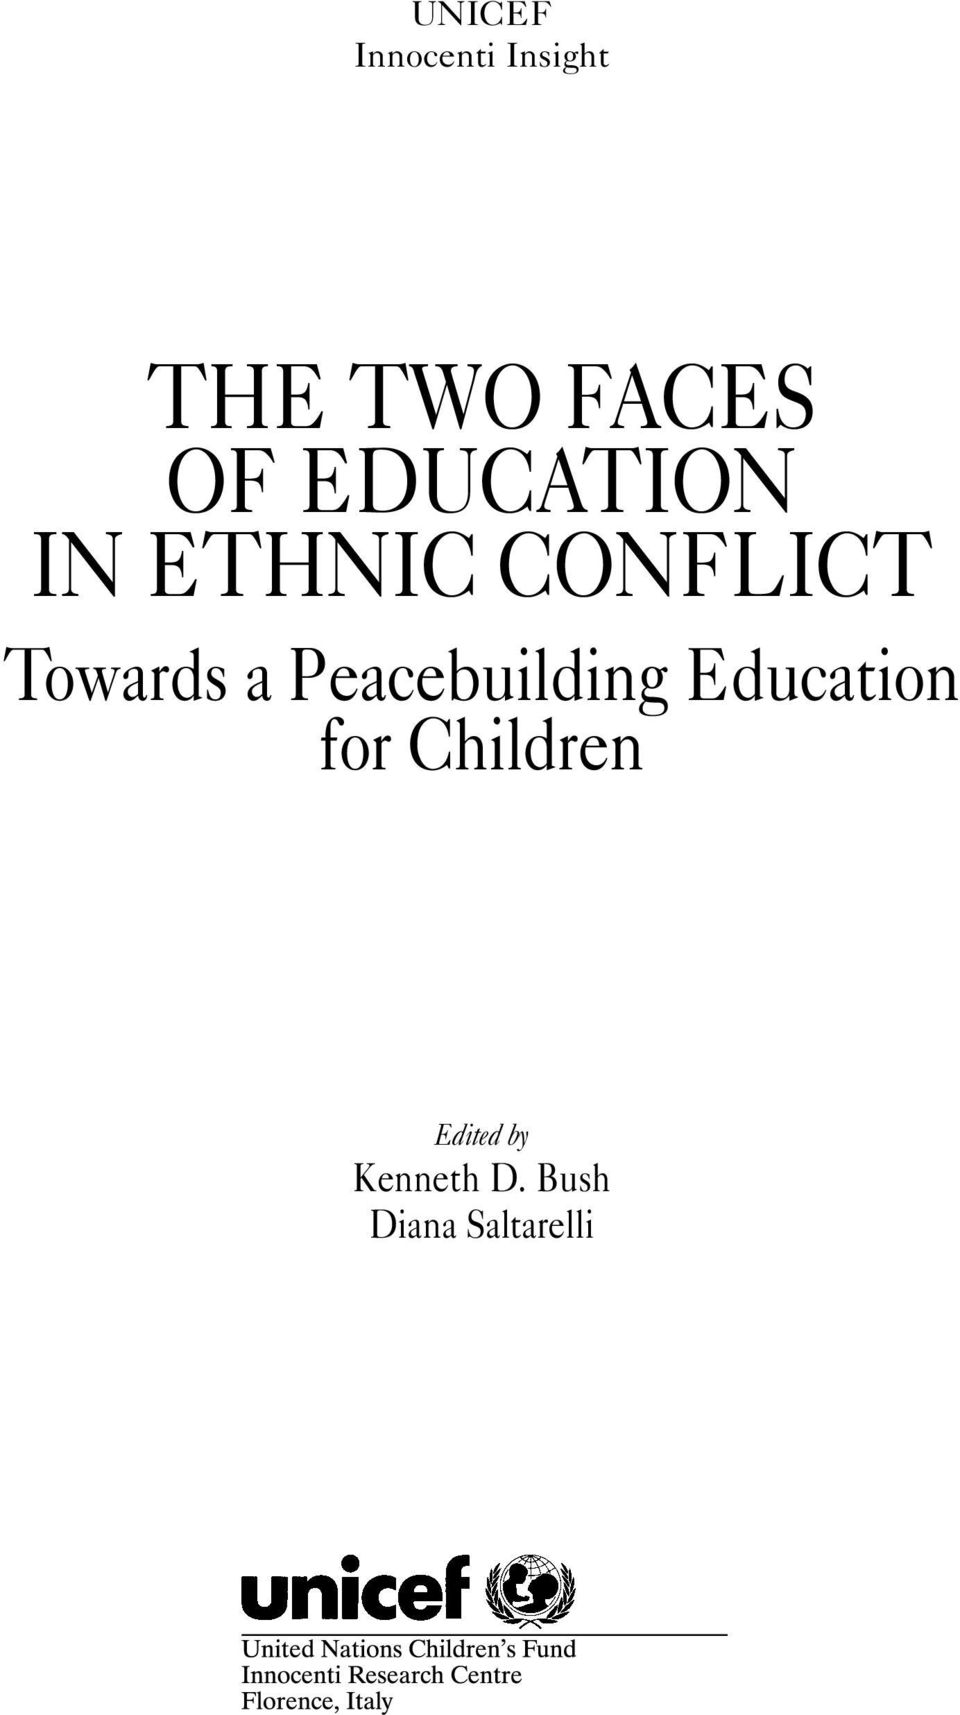 a Peacebuilding Education for Children